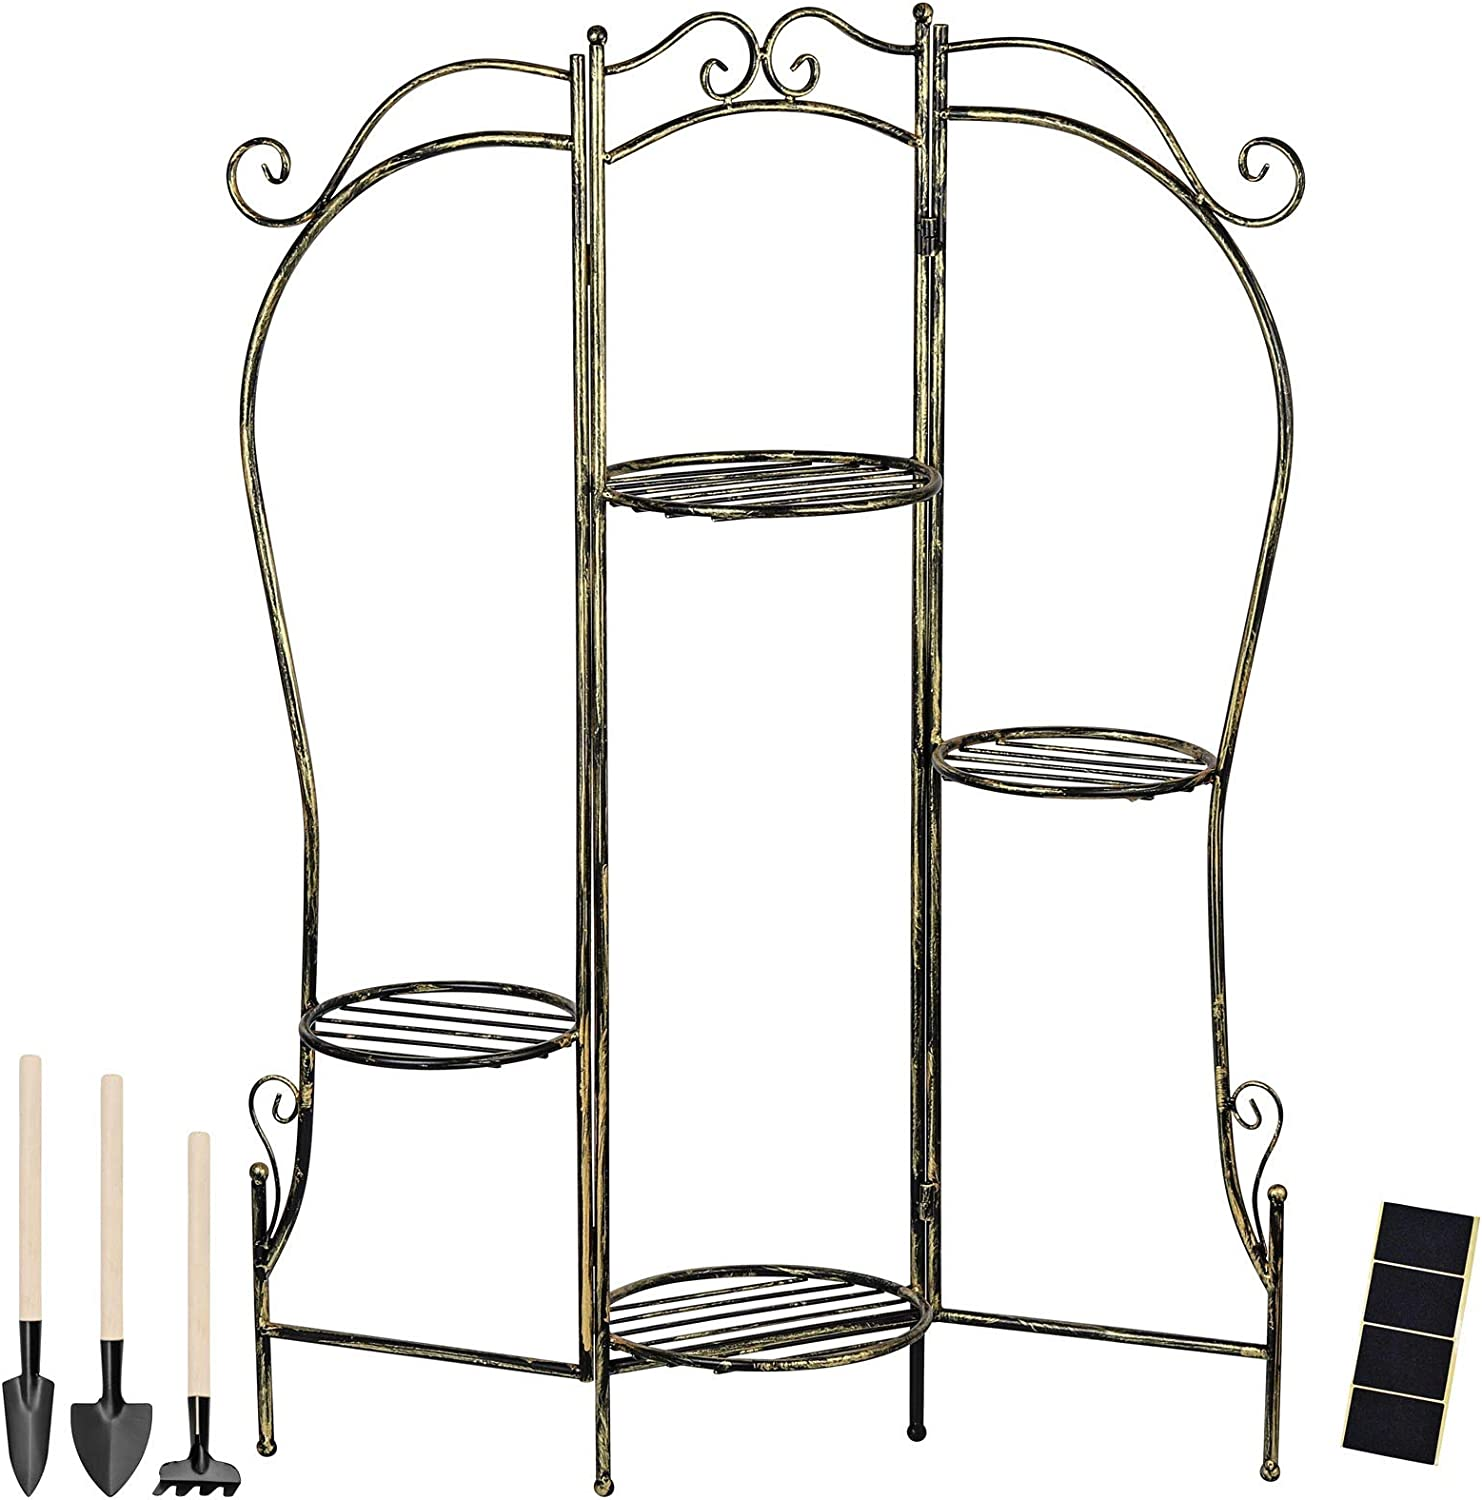 Retro Plant Stand/Shelves, Foldable Planter Display, Flower Pot Organizer Storage Rack for Indoor Outdoor